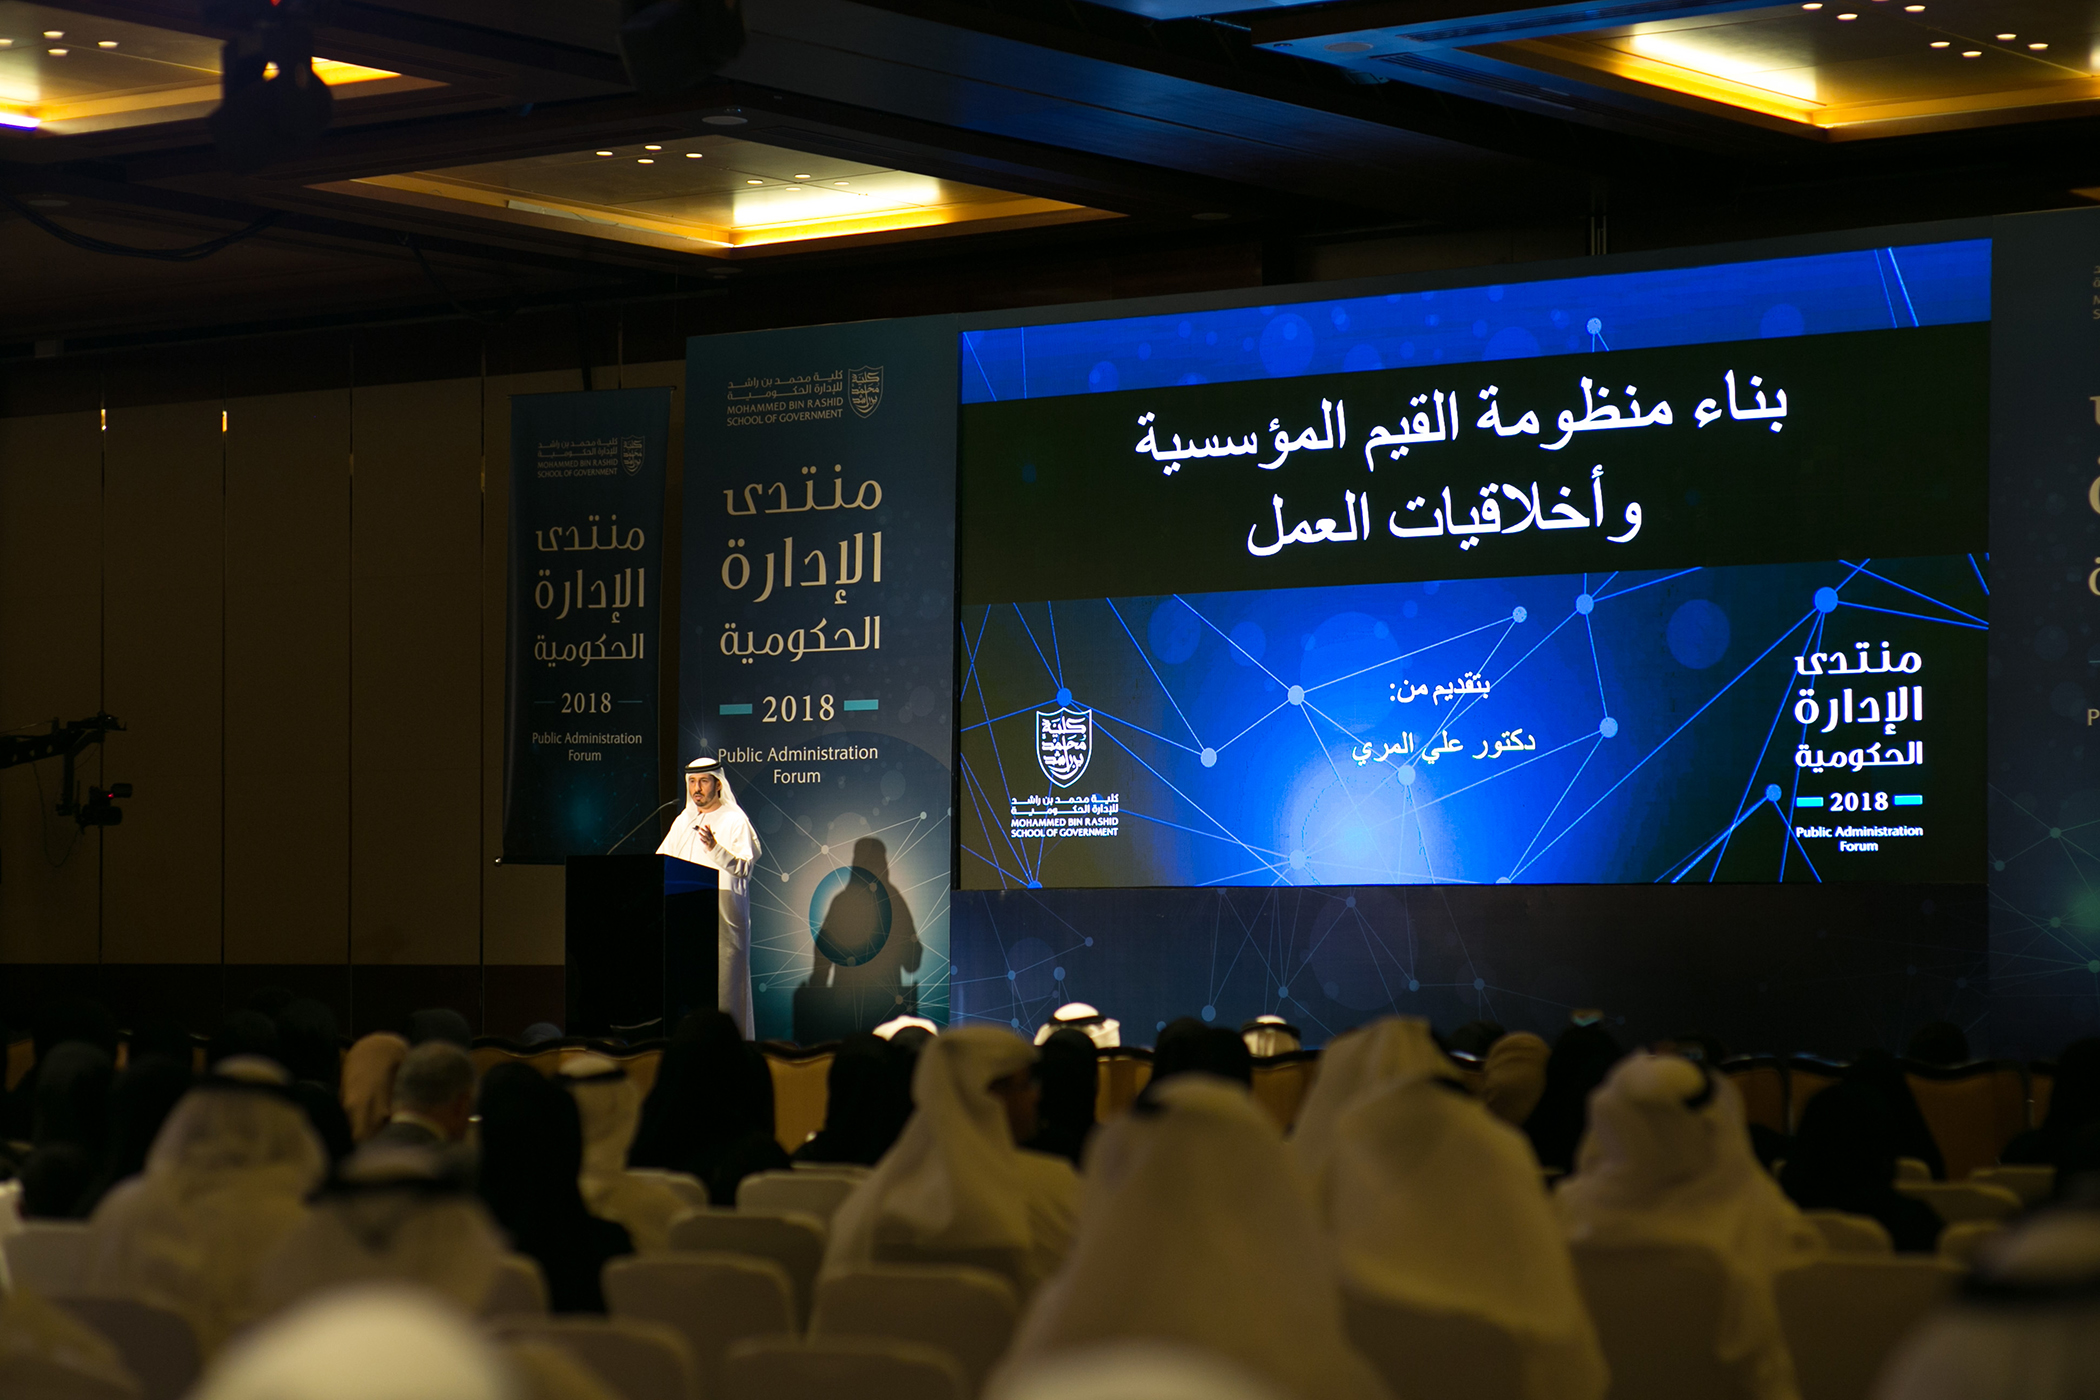 mbrsg launches 2nd edition of its public administration forum3